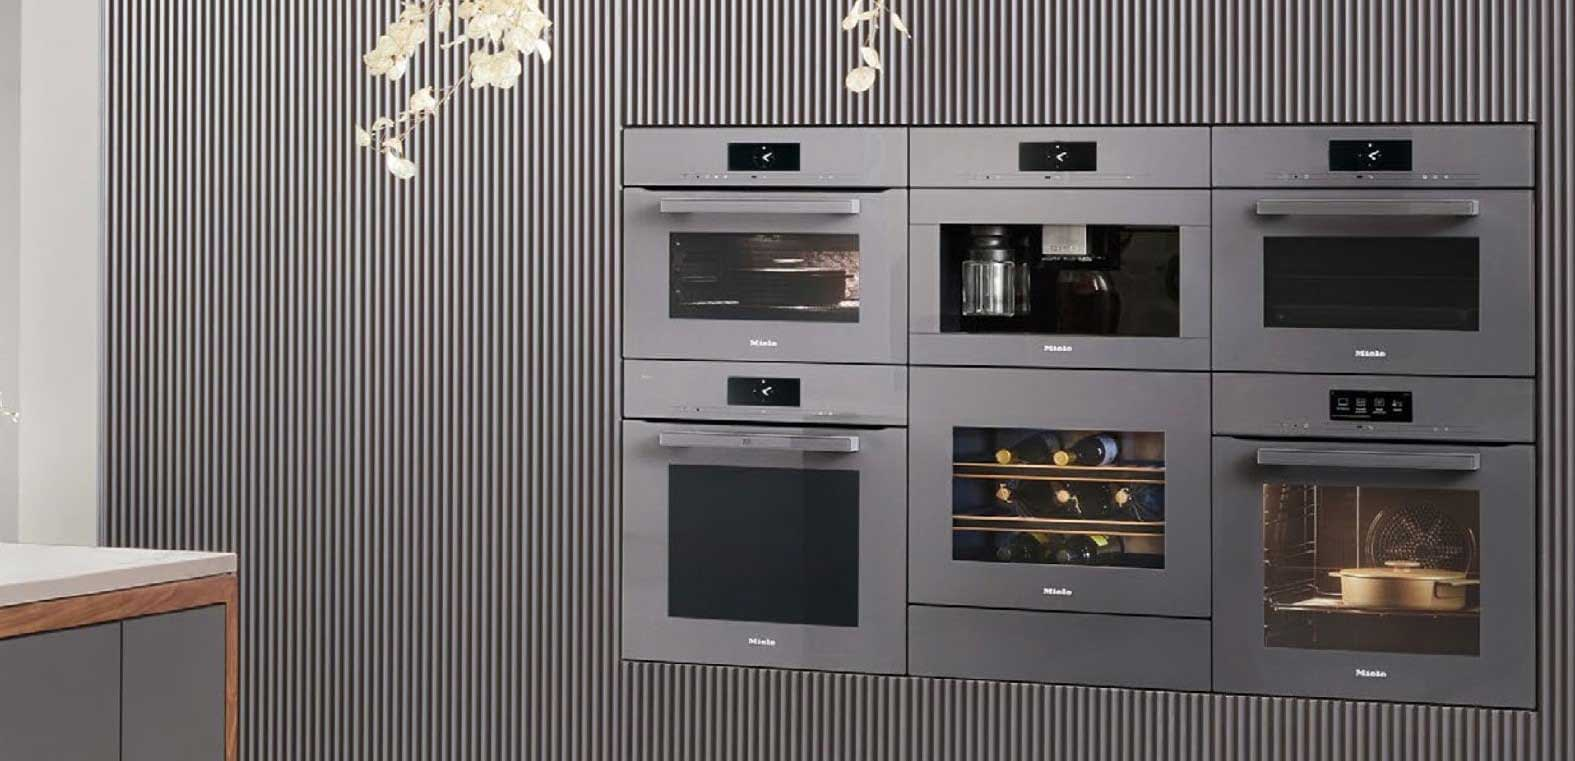 Miele Siemens Neff Appliances London